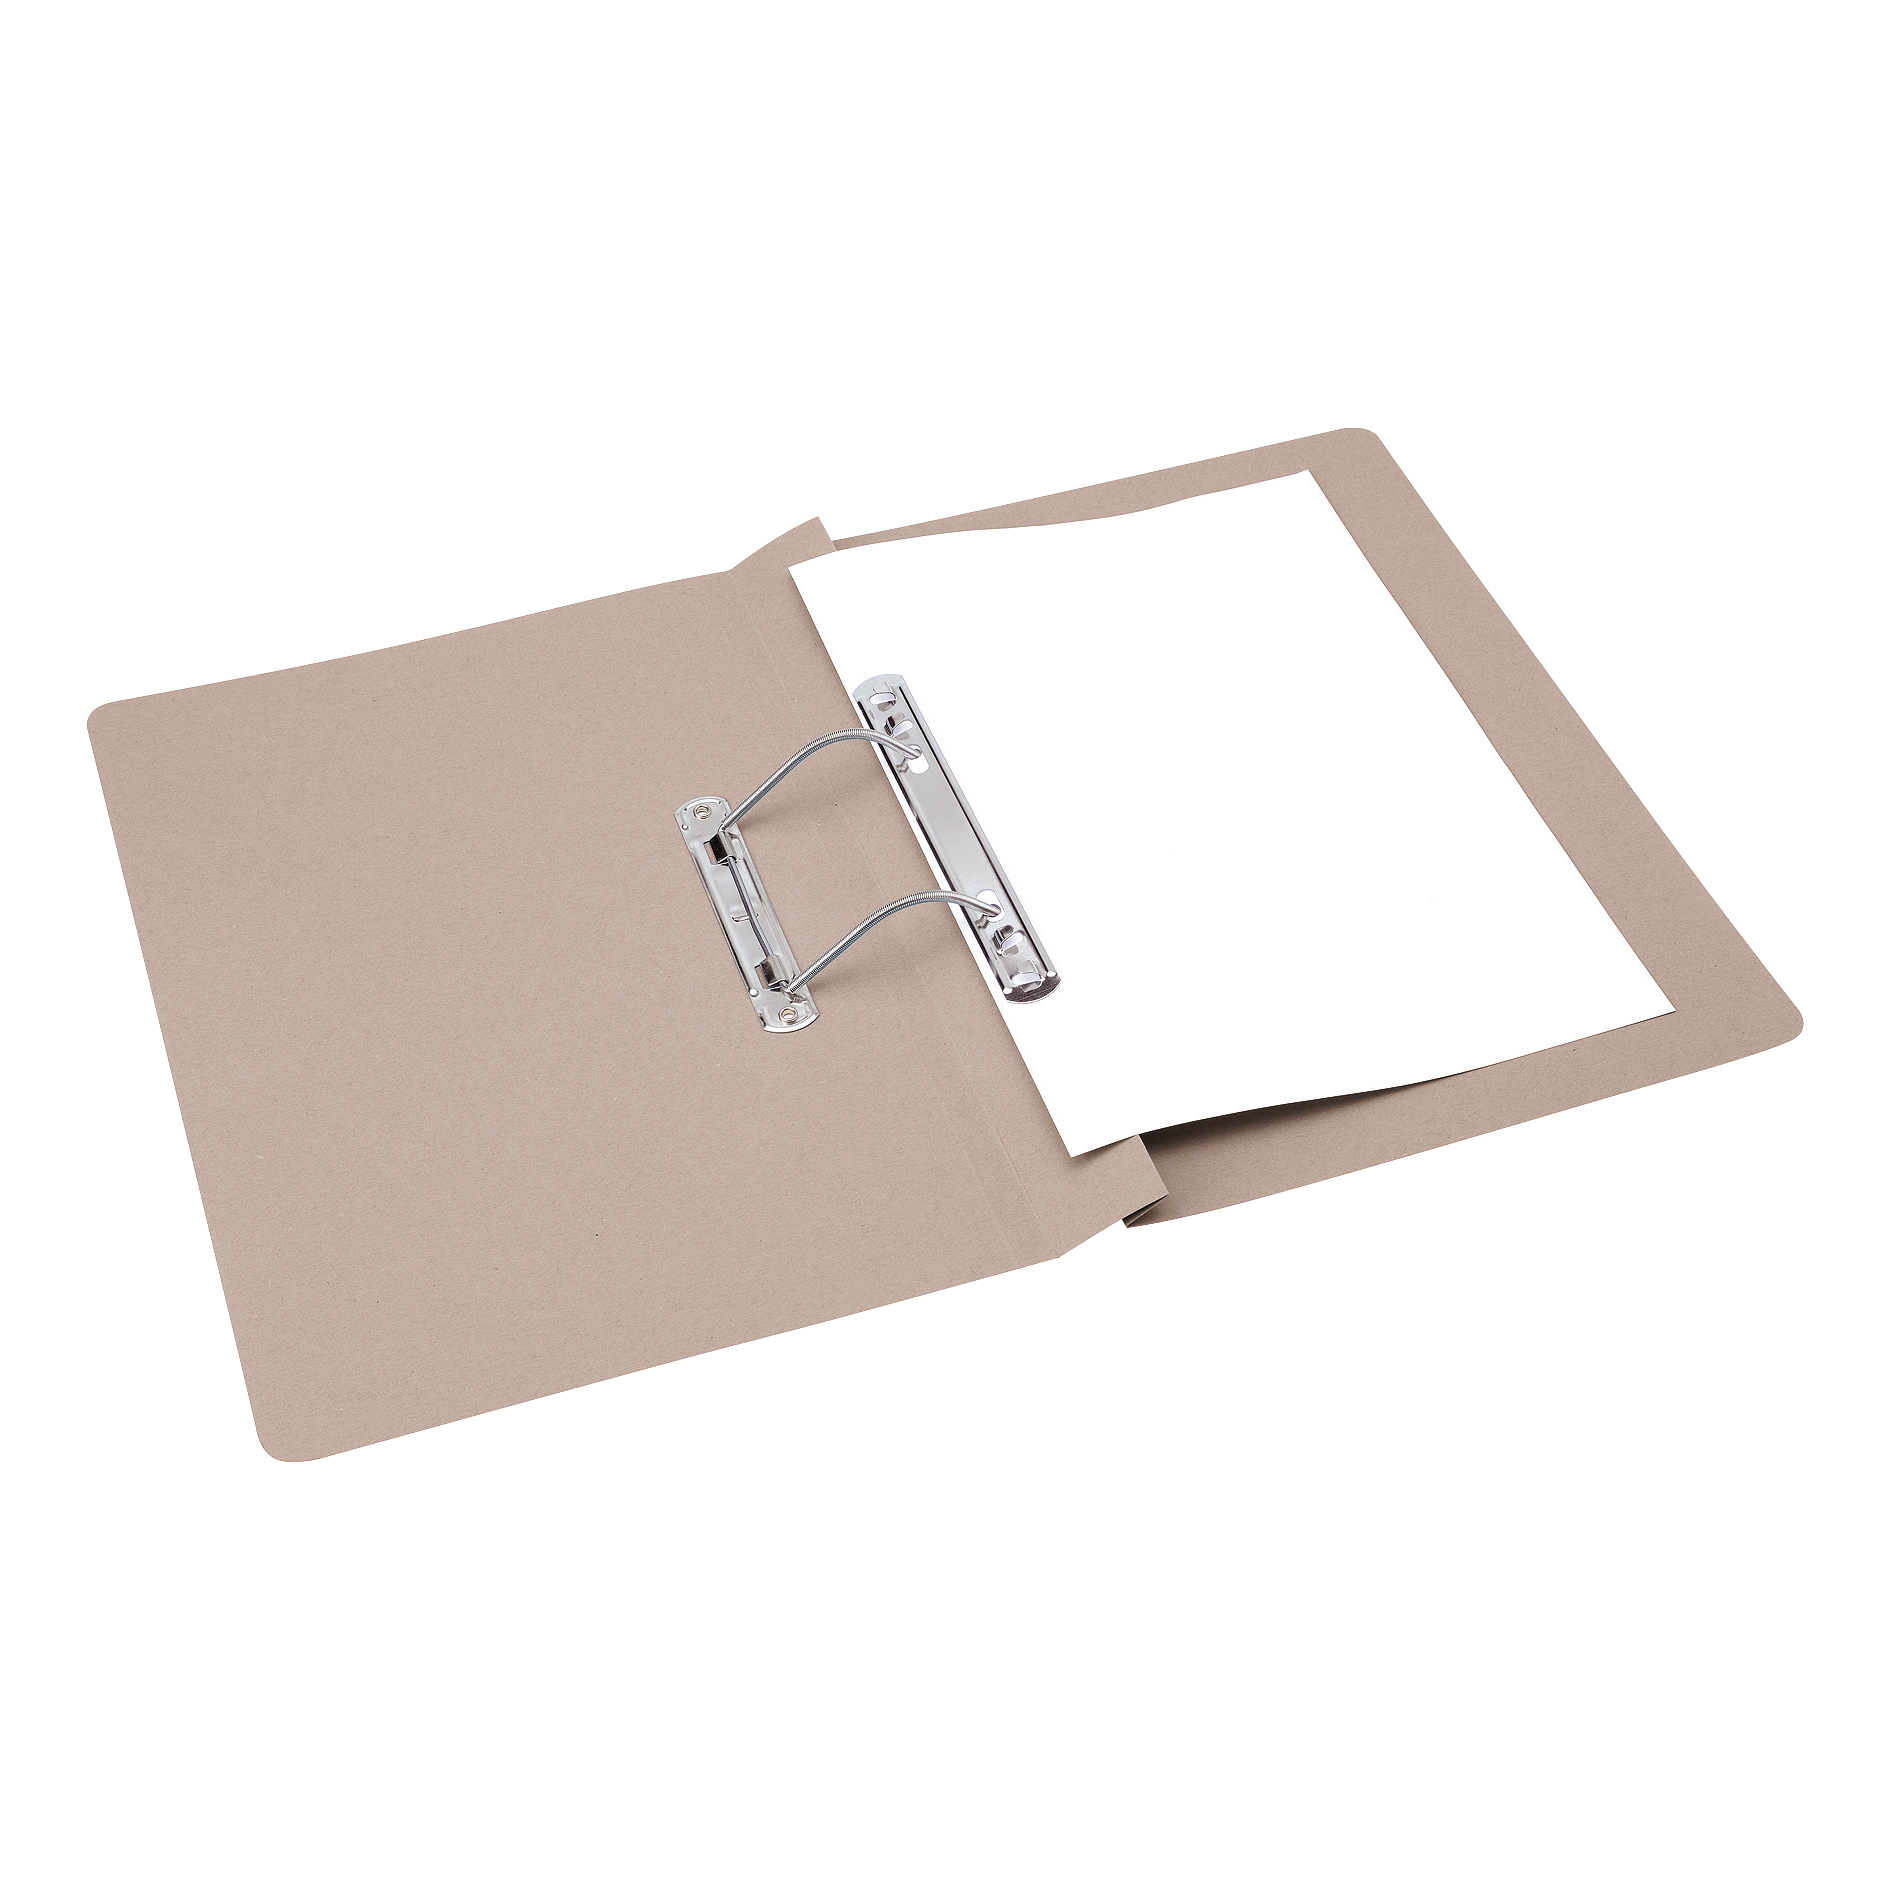 Spring Files 5 Star Office Transfer Spring File Mediumweight 285gsm Capacity 38mm Foolscap Buff Pack 50